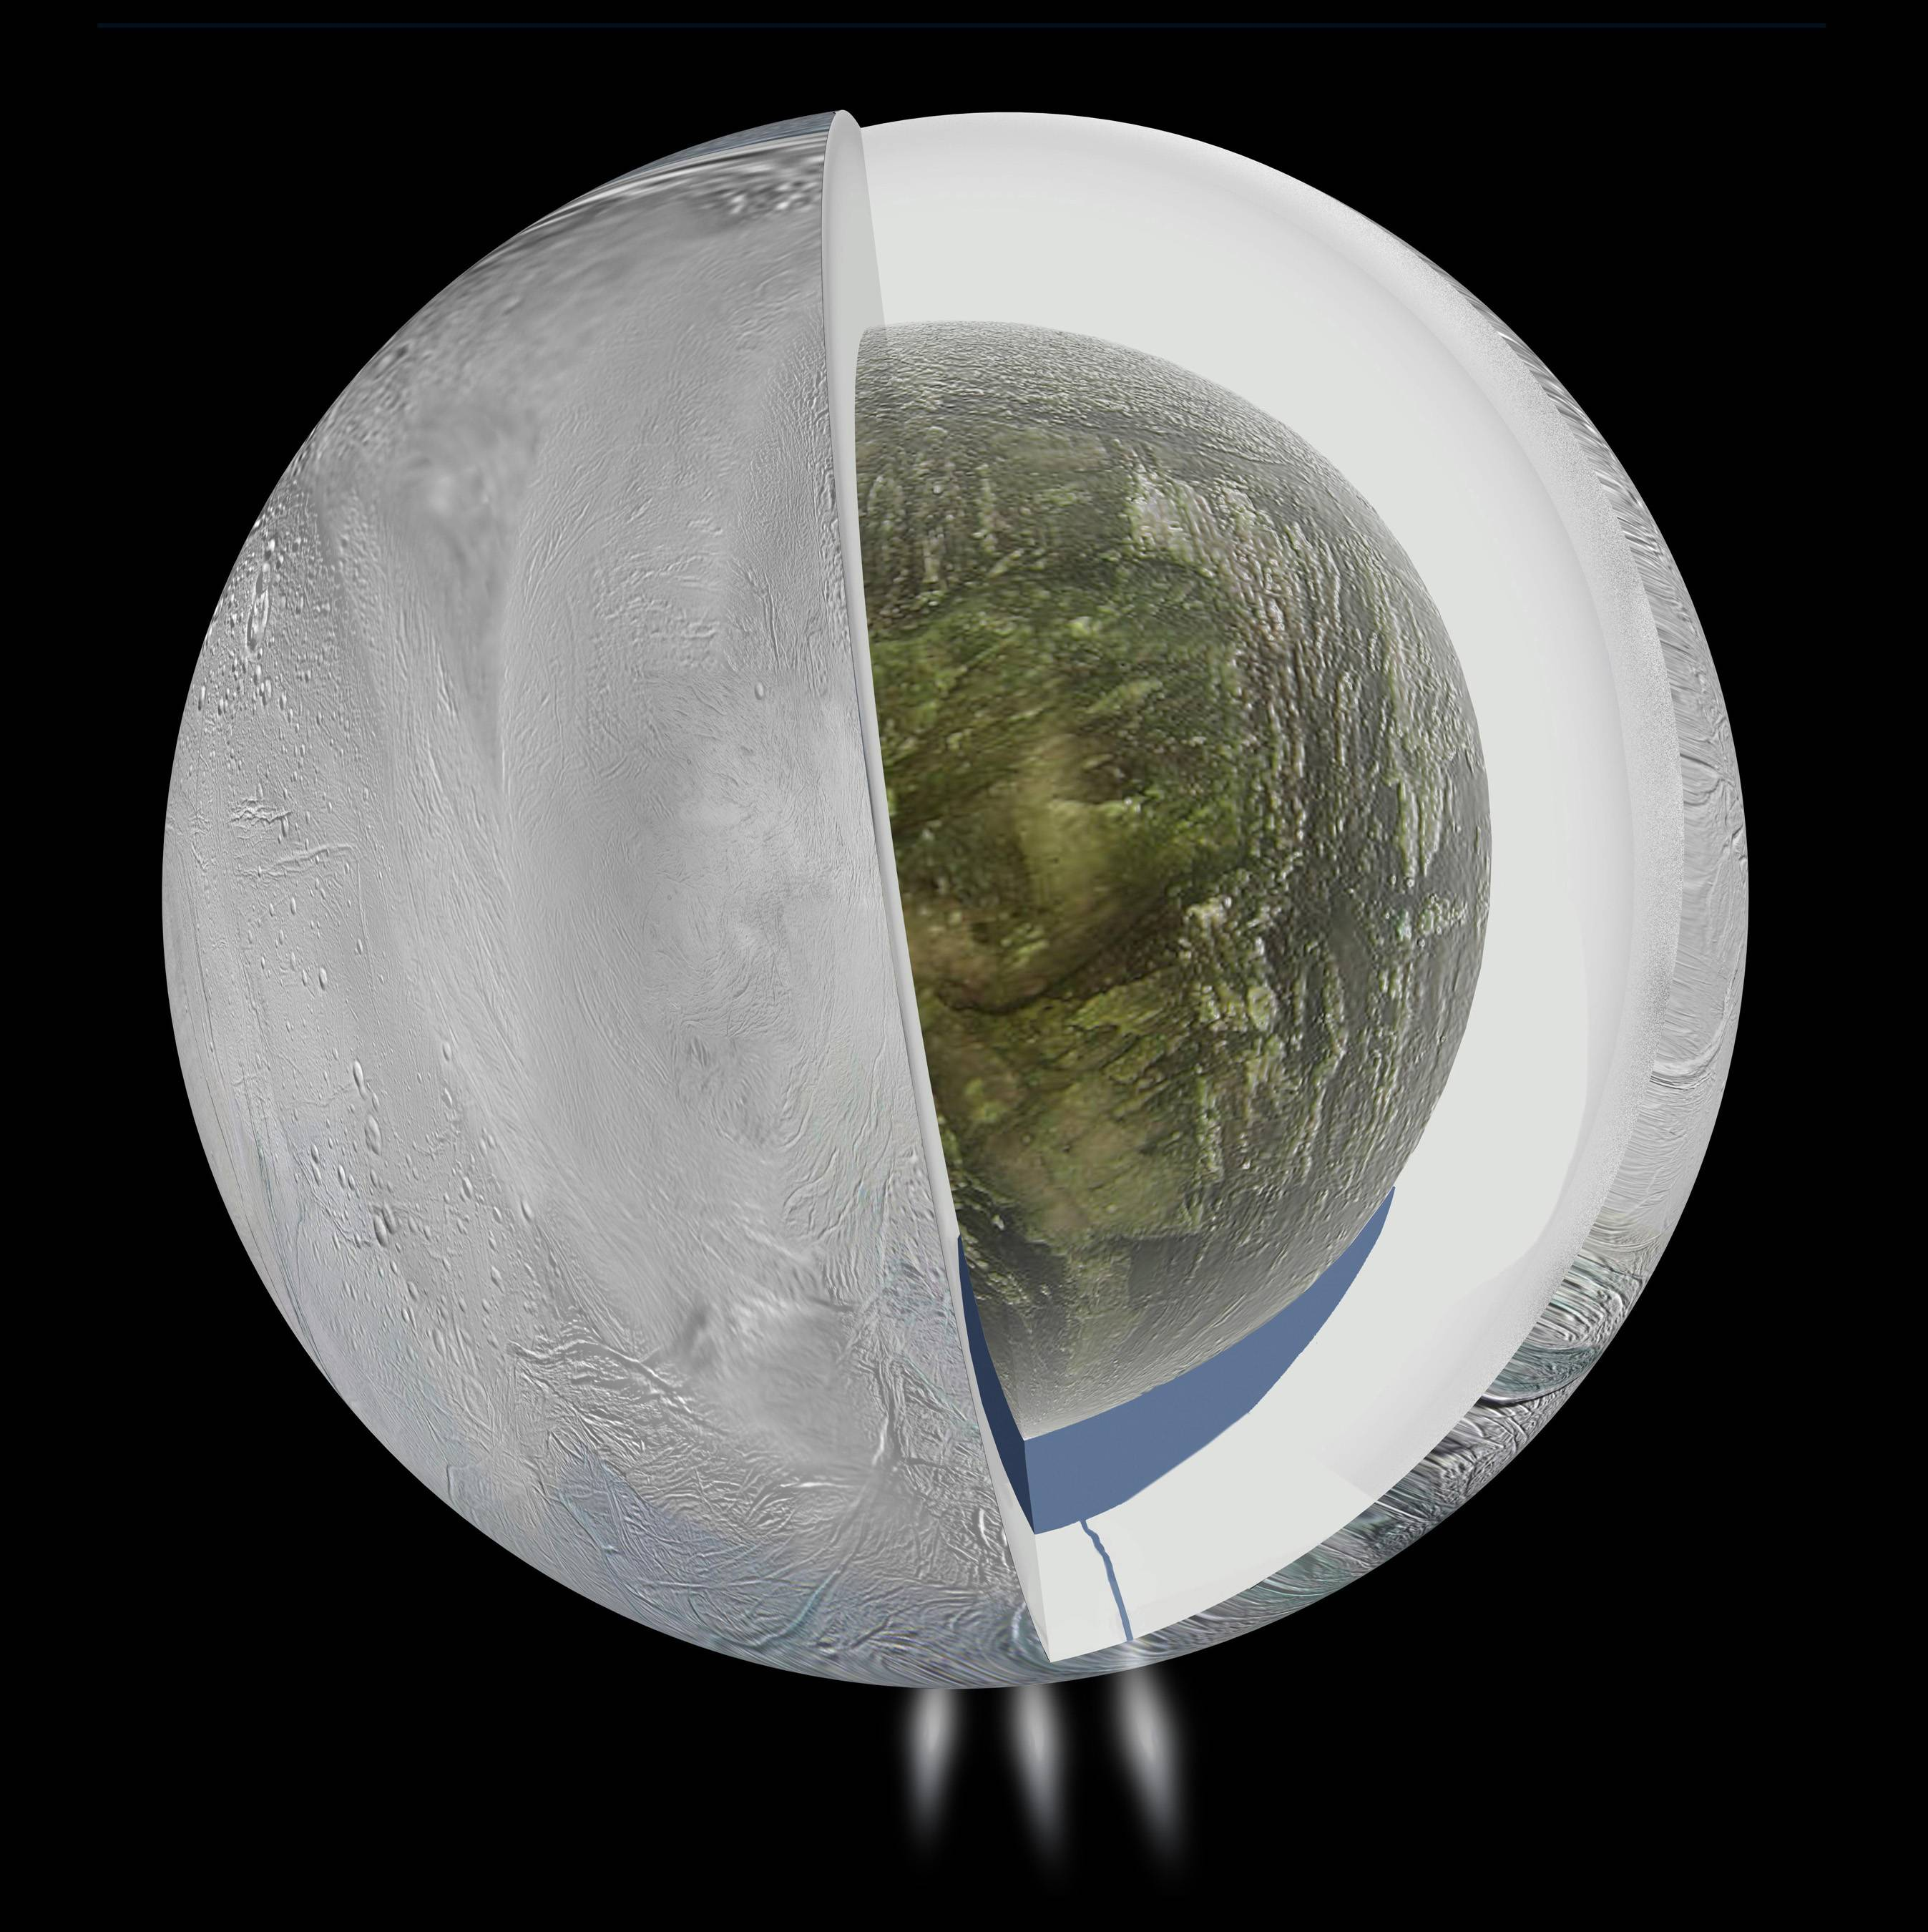 This illustration provided by NASA and based on Cassini spacecraft measurements shows the possible interior of Saturn's moon Enceladus — an icy outer shell and a low density, rocky core with a regional water ocean sandwiched in between the two at southern latitudes. Plumes of water vapor and ice, first detected in 2005, are depicted in the south polar region.